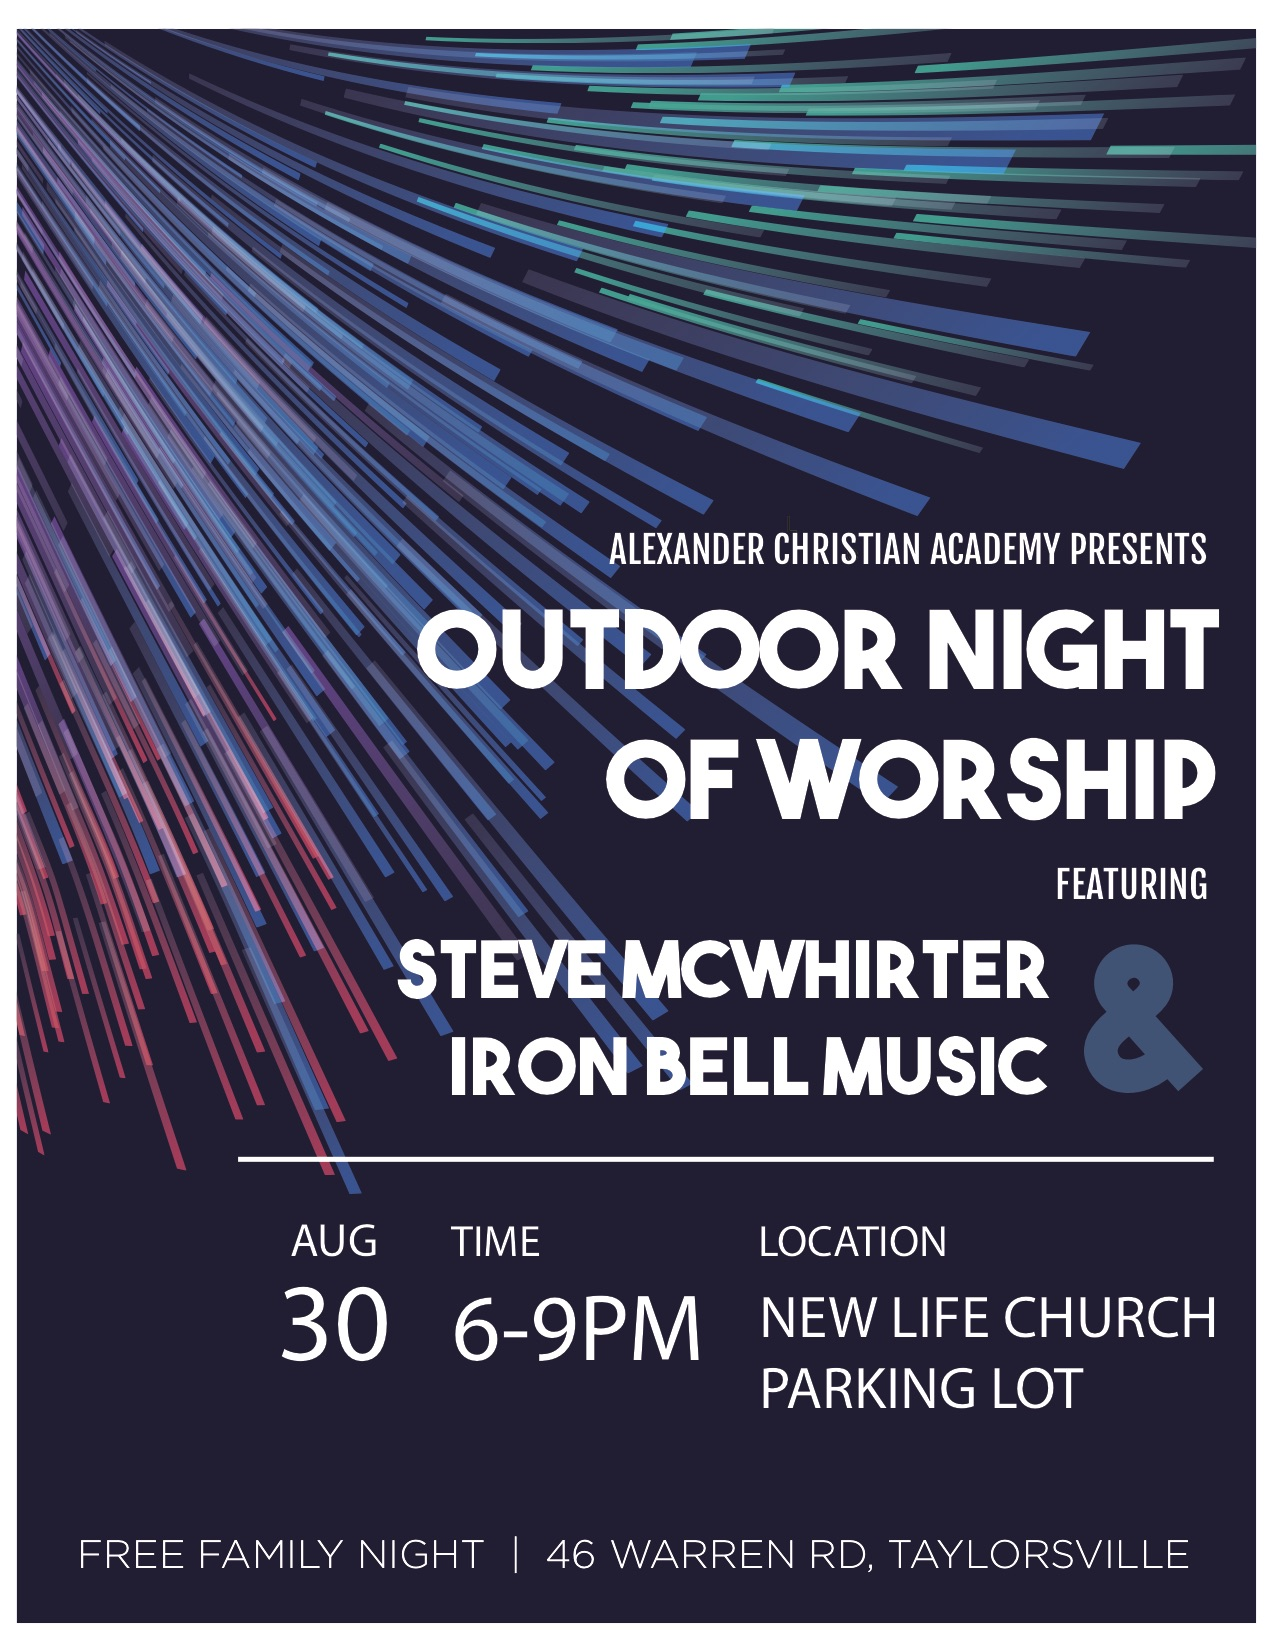 ACA Outdoor Worship Night